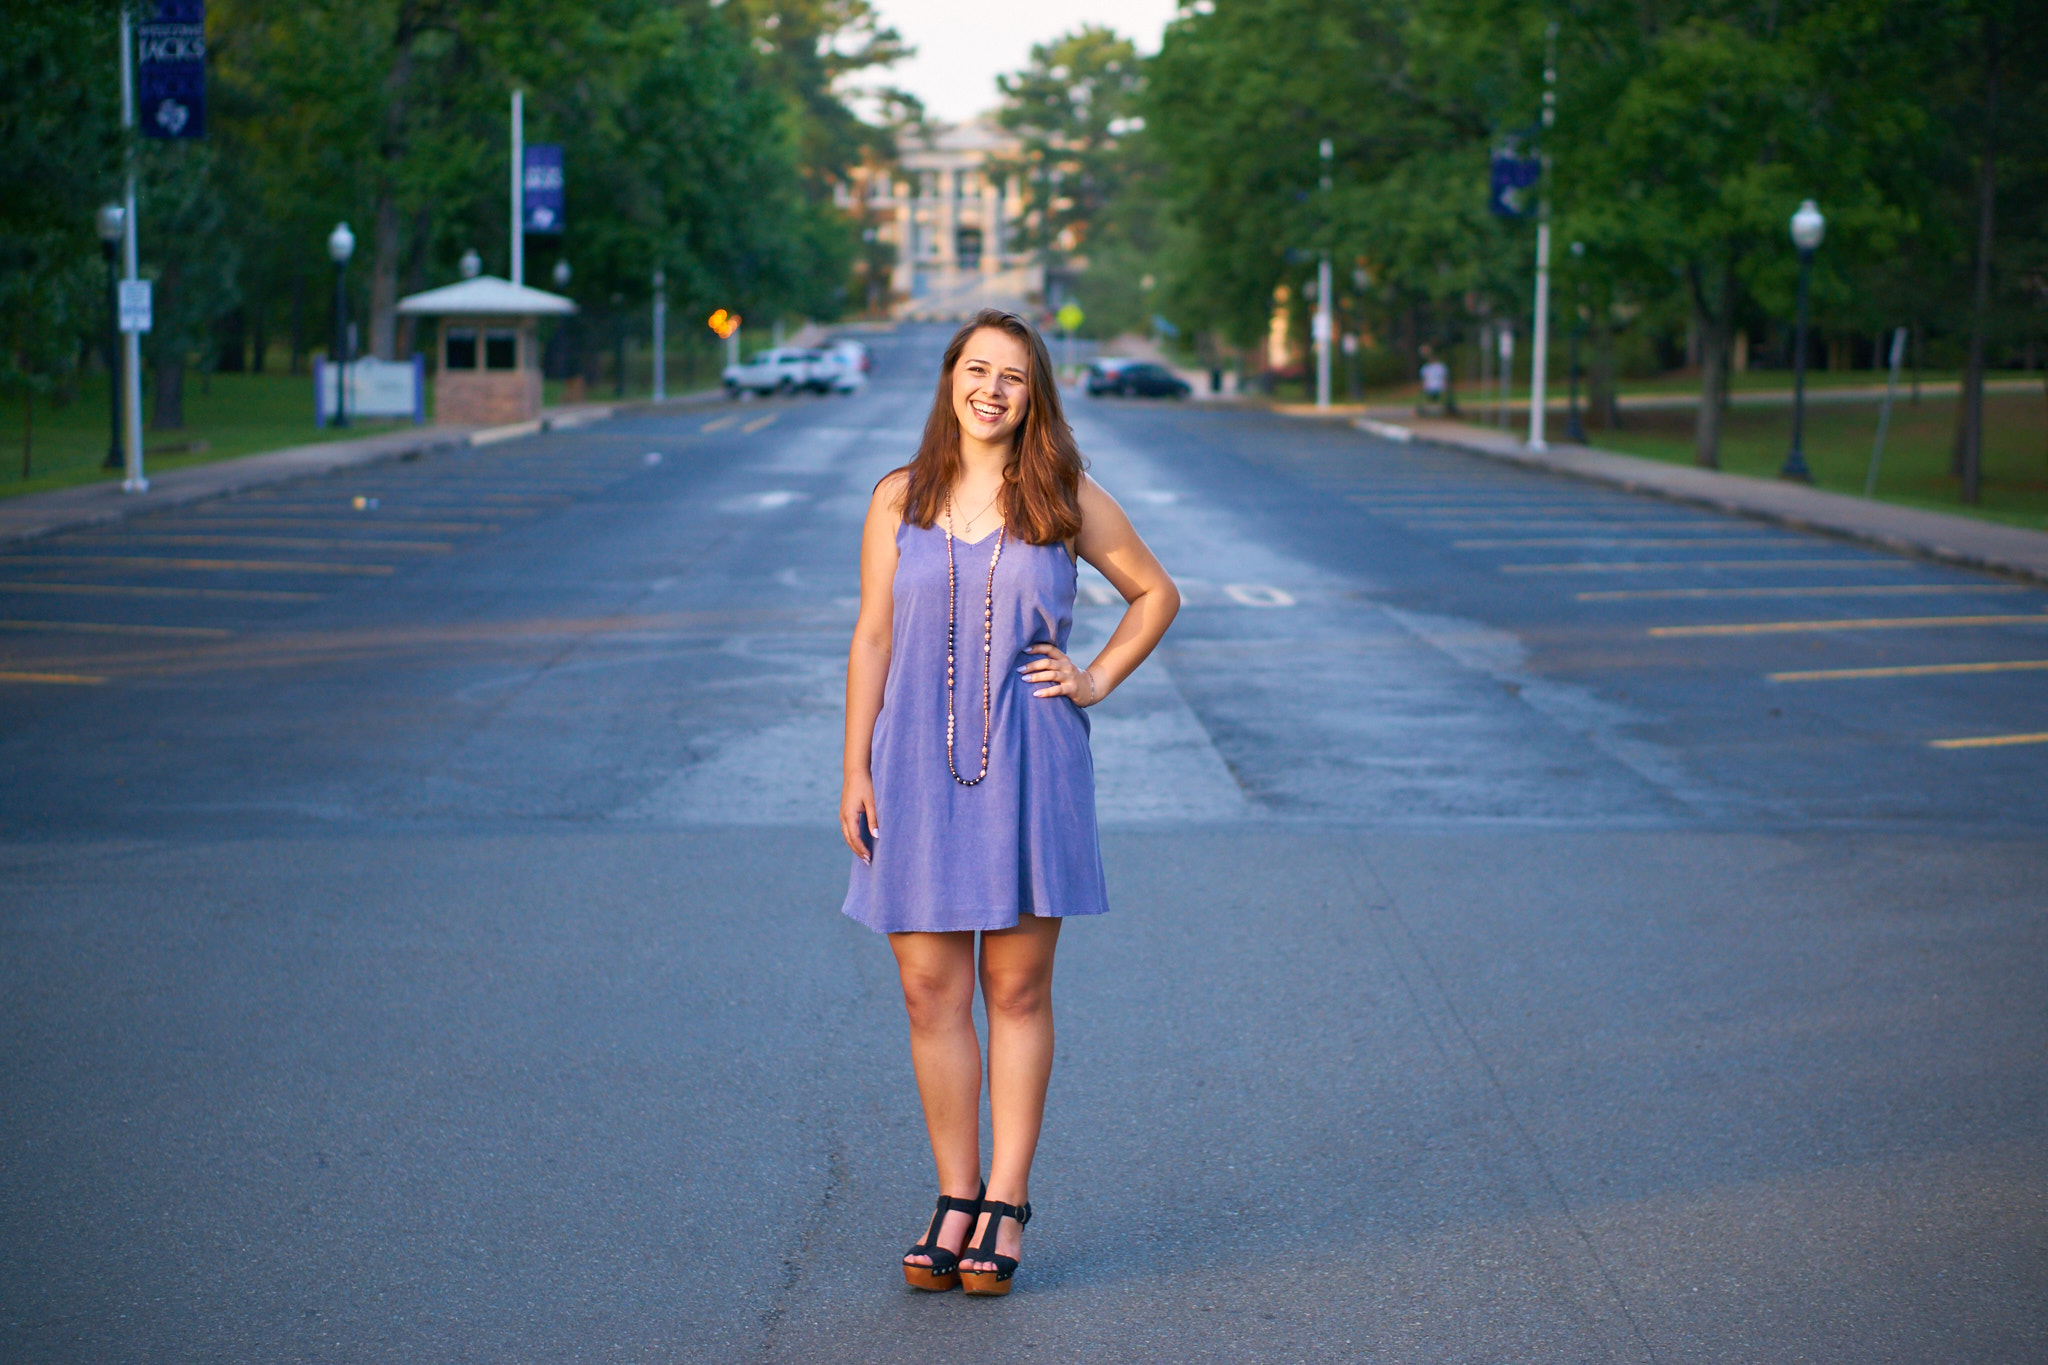 Photographer from Nacogdoches Texas